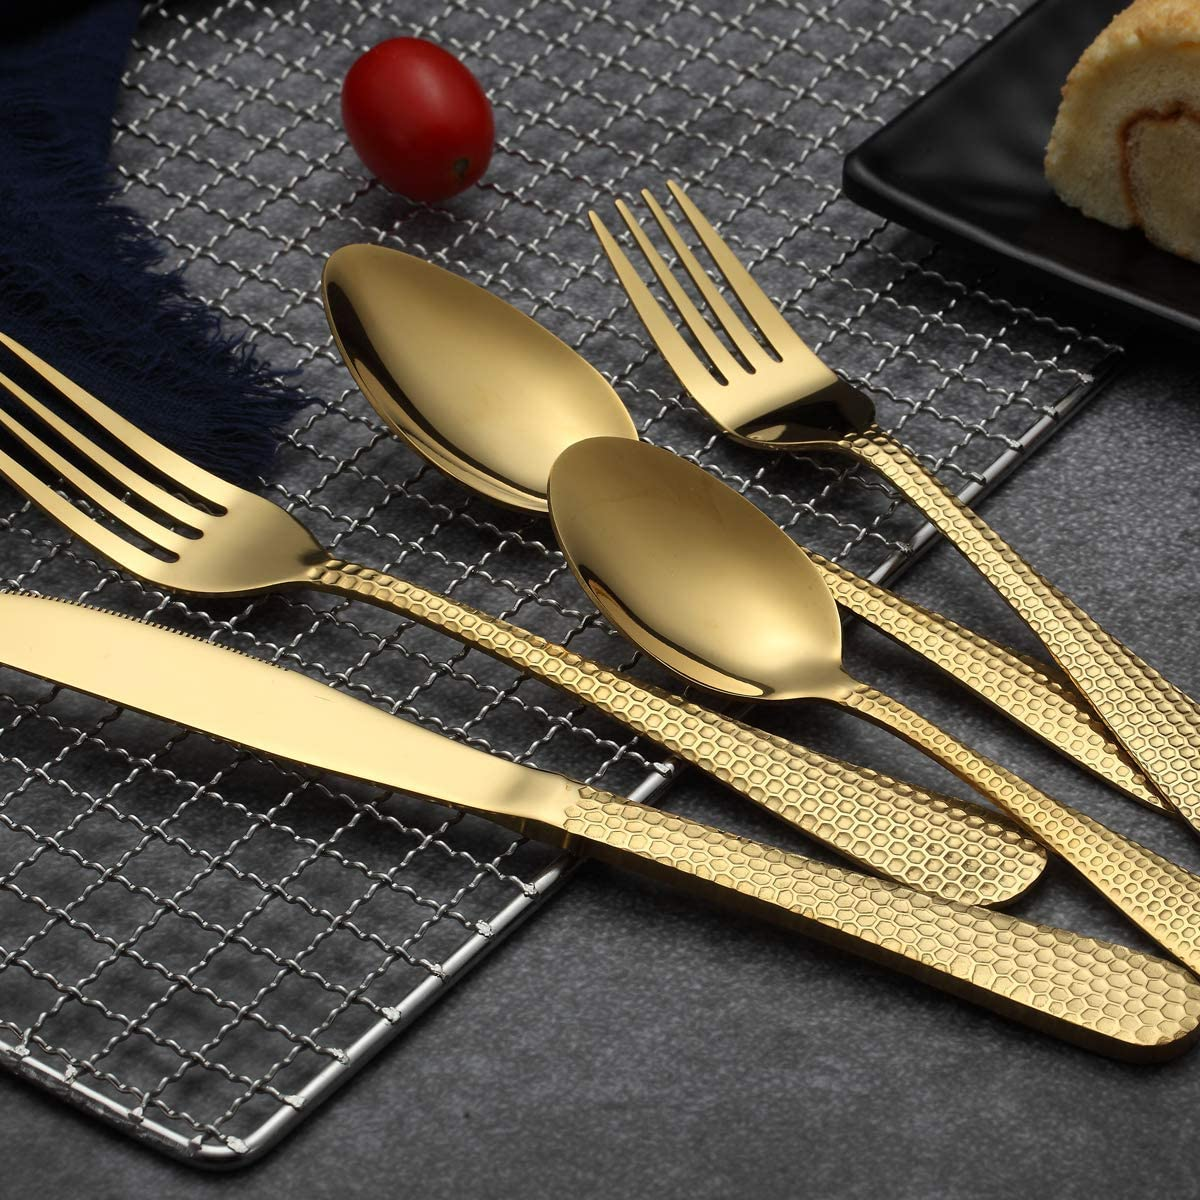 Shiny Rainbow 20 Pieces Service for 4 Kyraton Colorful Titianium Plated Stainless Steel Flatware Set 20 Pieces,Hammer Design Rainbow Color Silverware Set